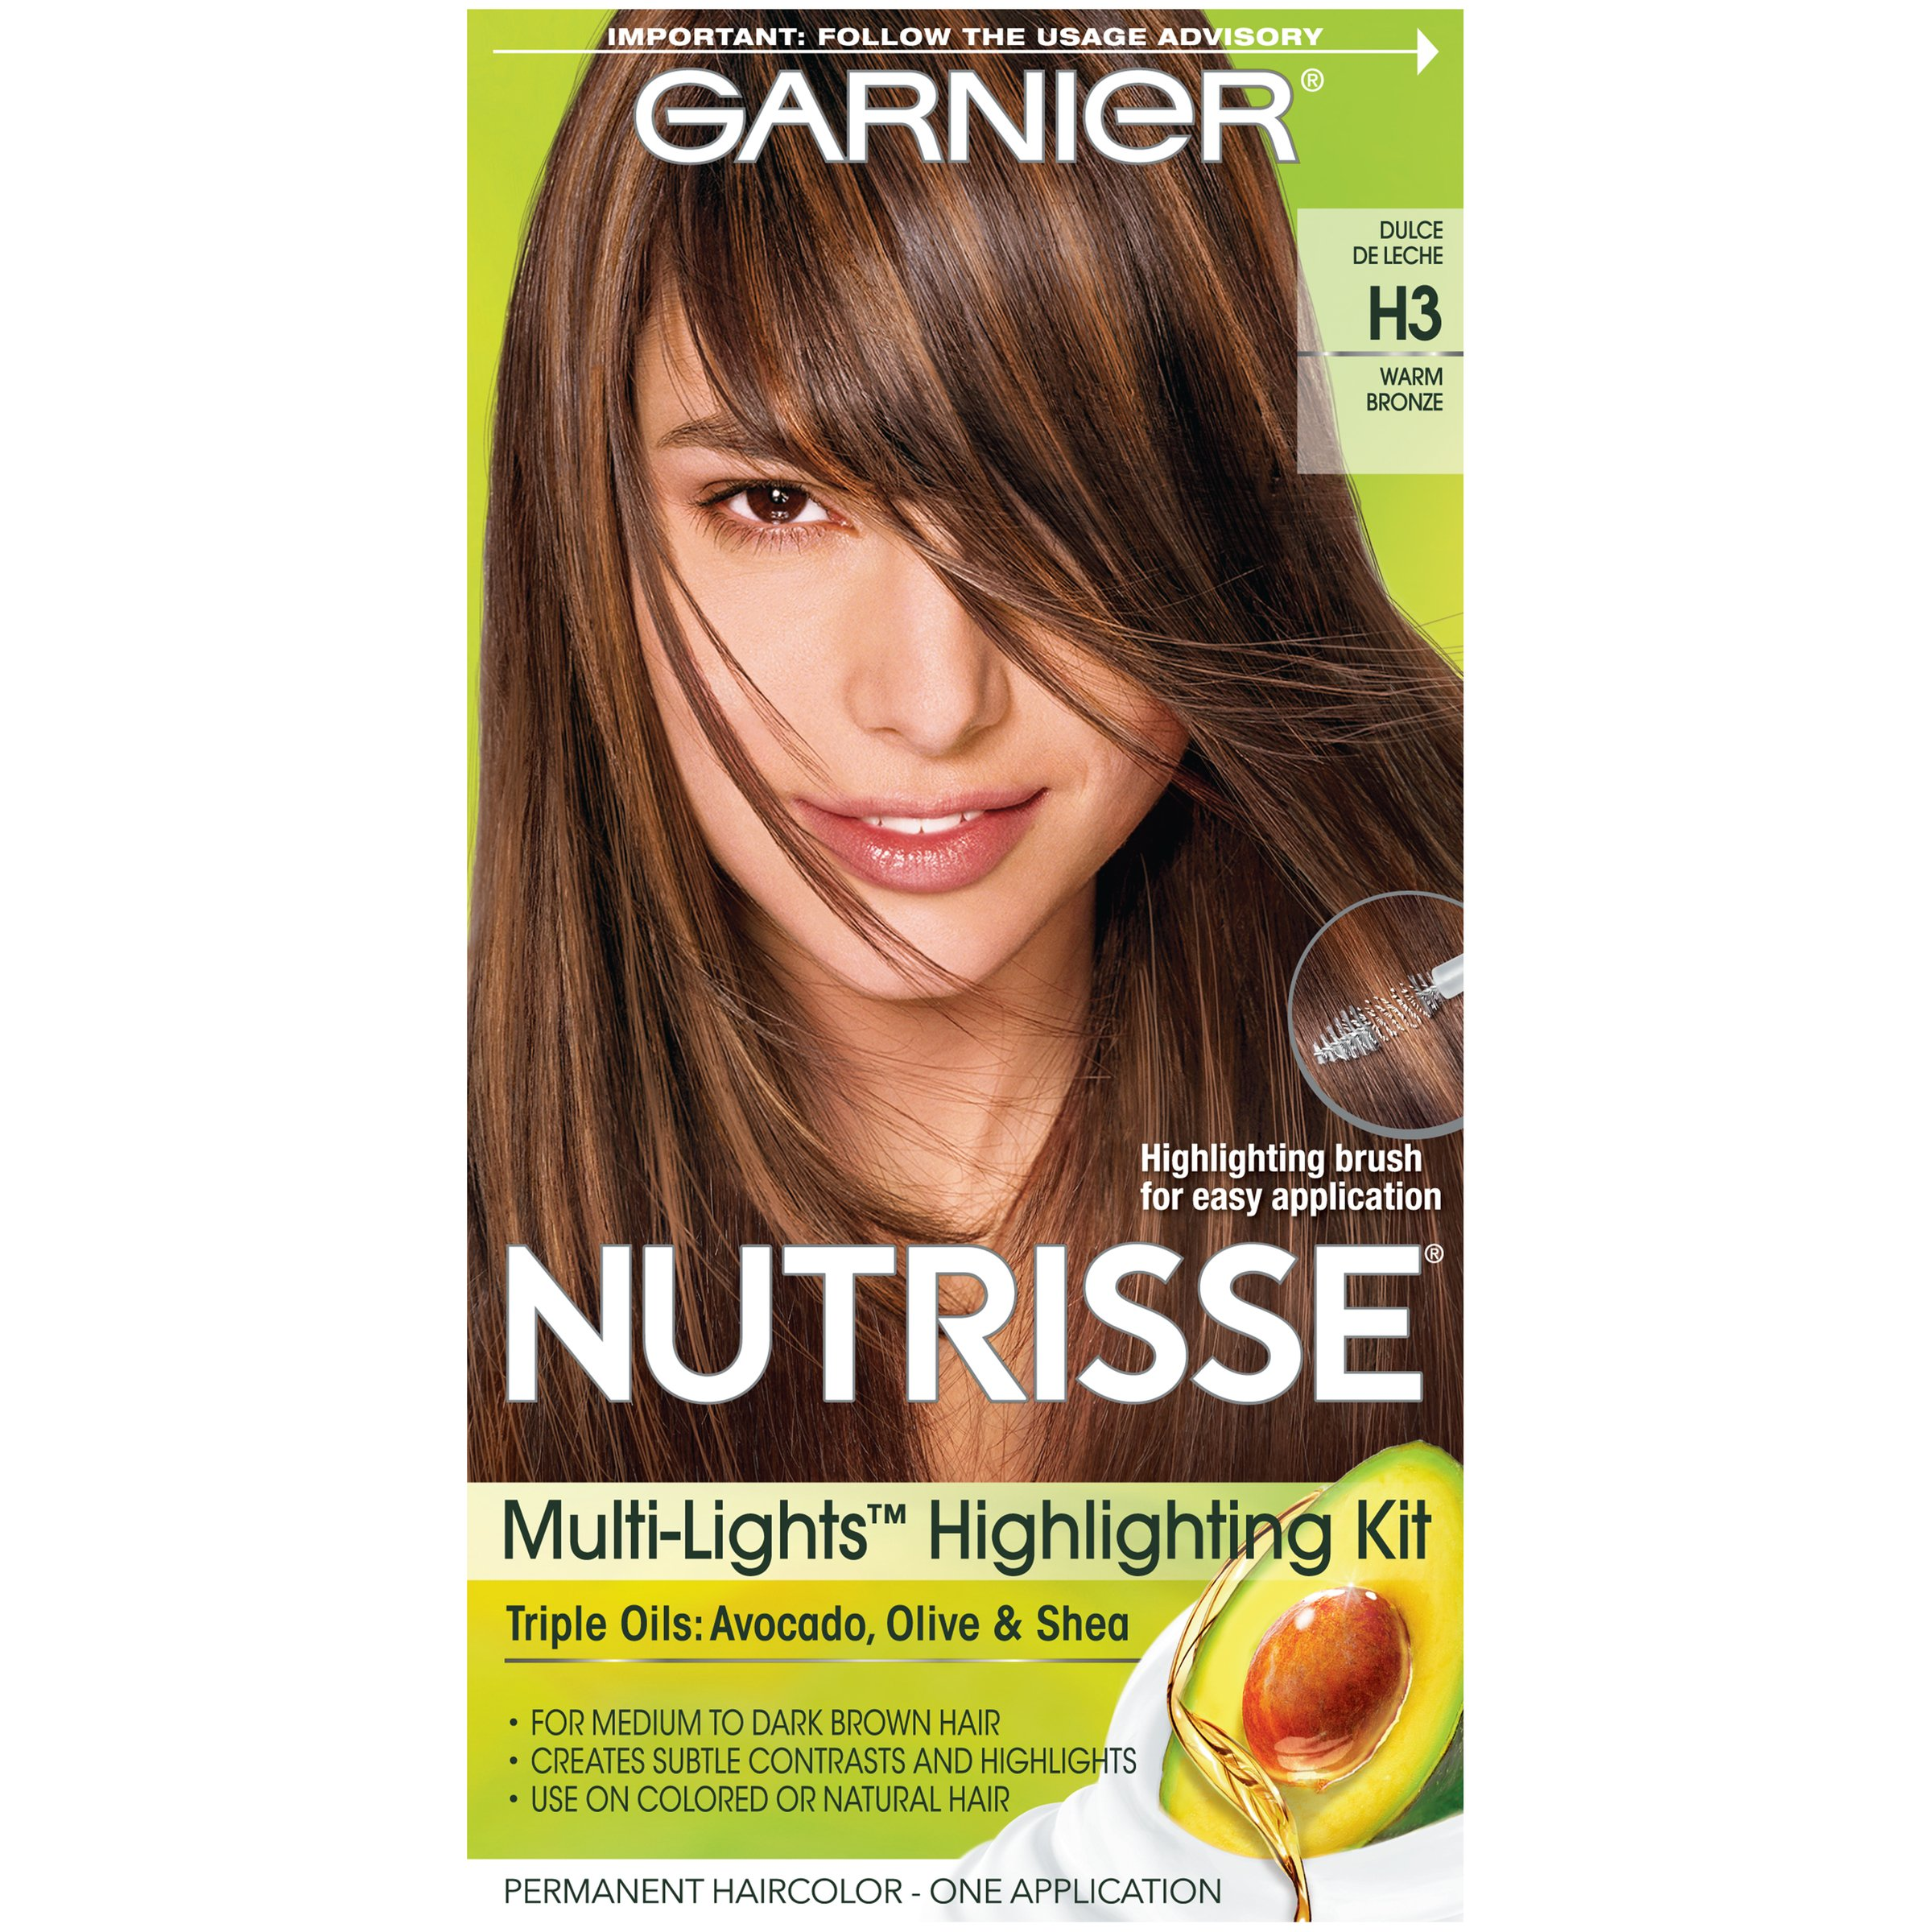 Garnier Nutrisse Nourishing Hair Color Creme, H3 Warm Bronze (Packaging May Vary)